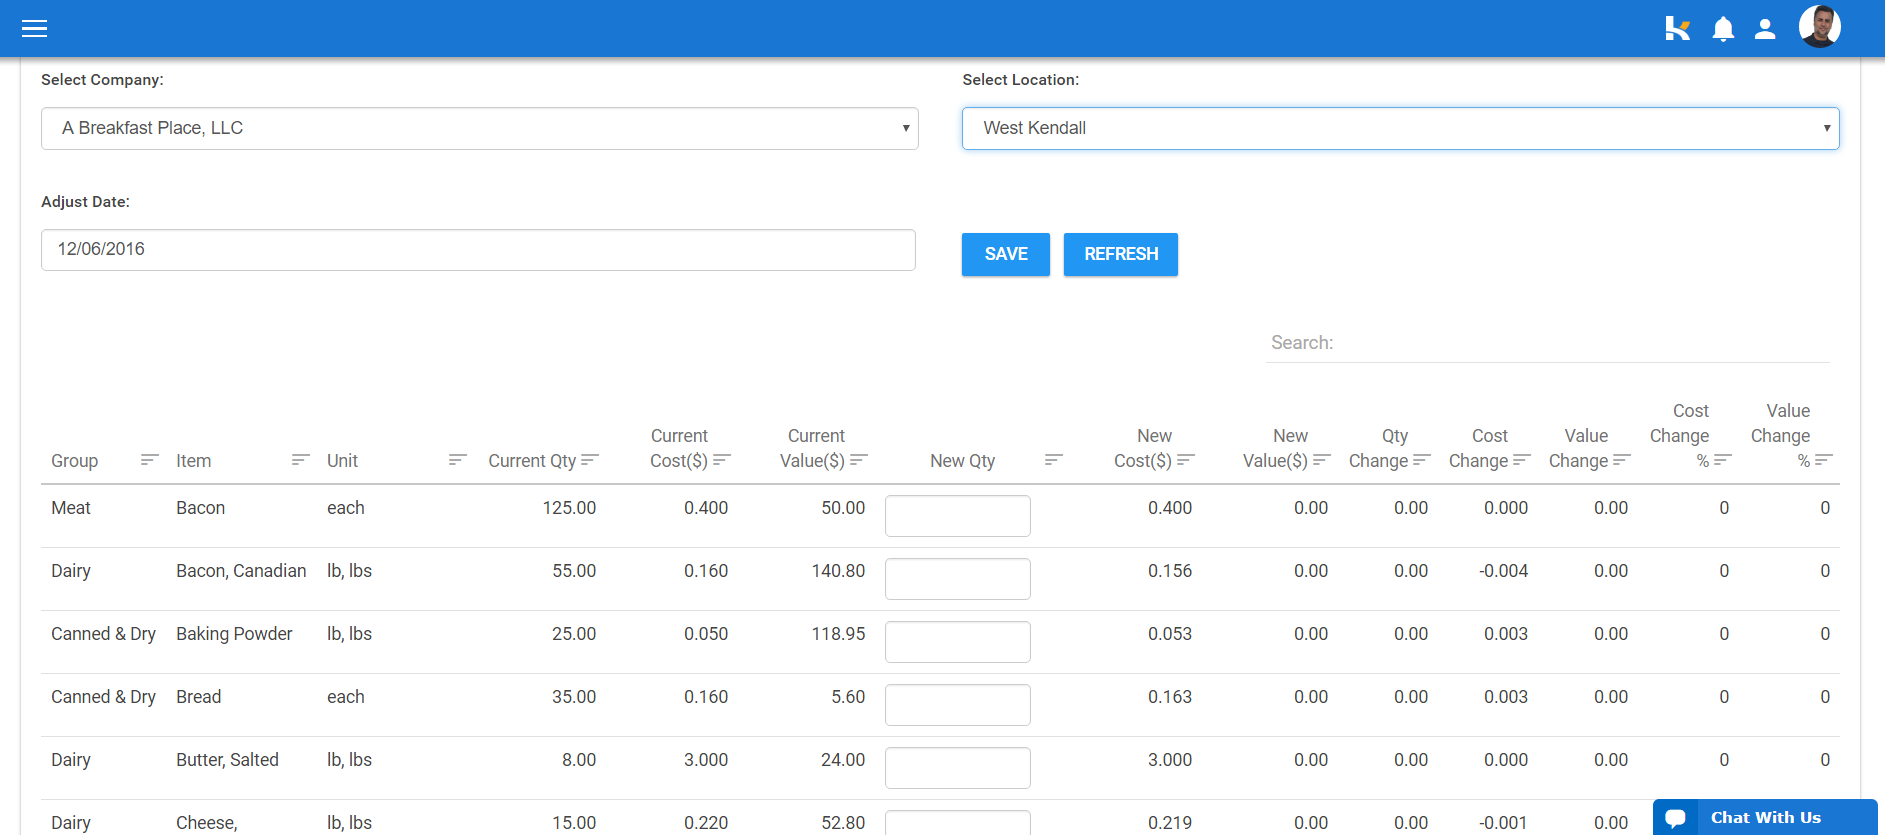 Inventory quantities, costs, and values can be tracked